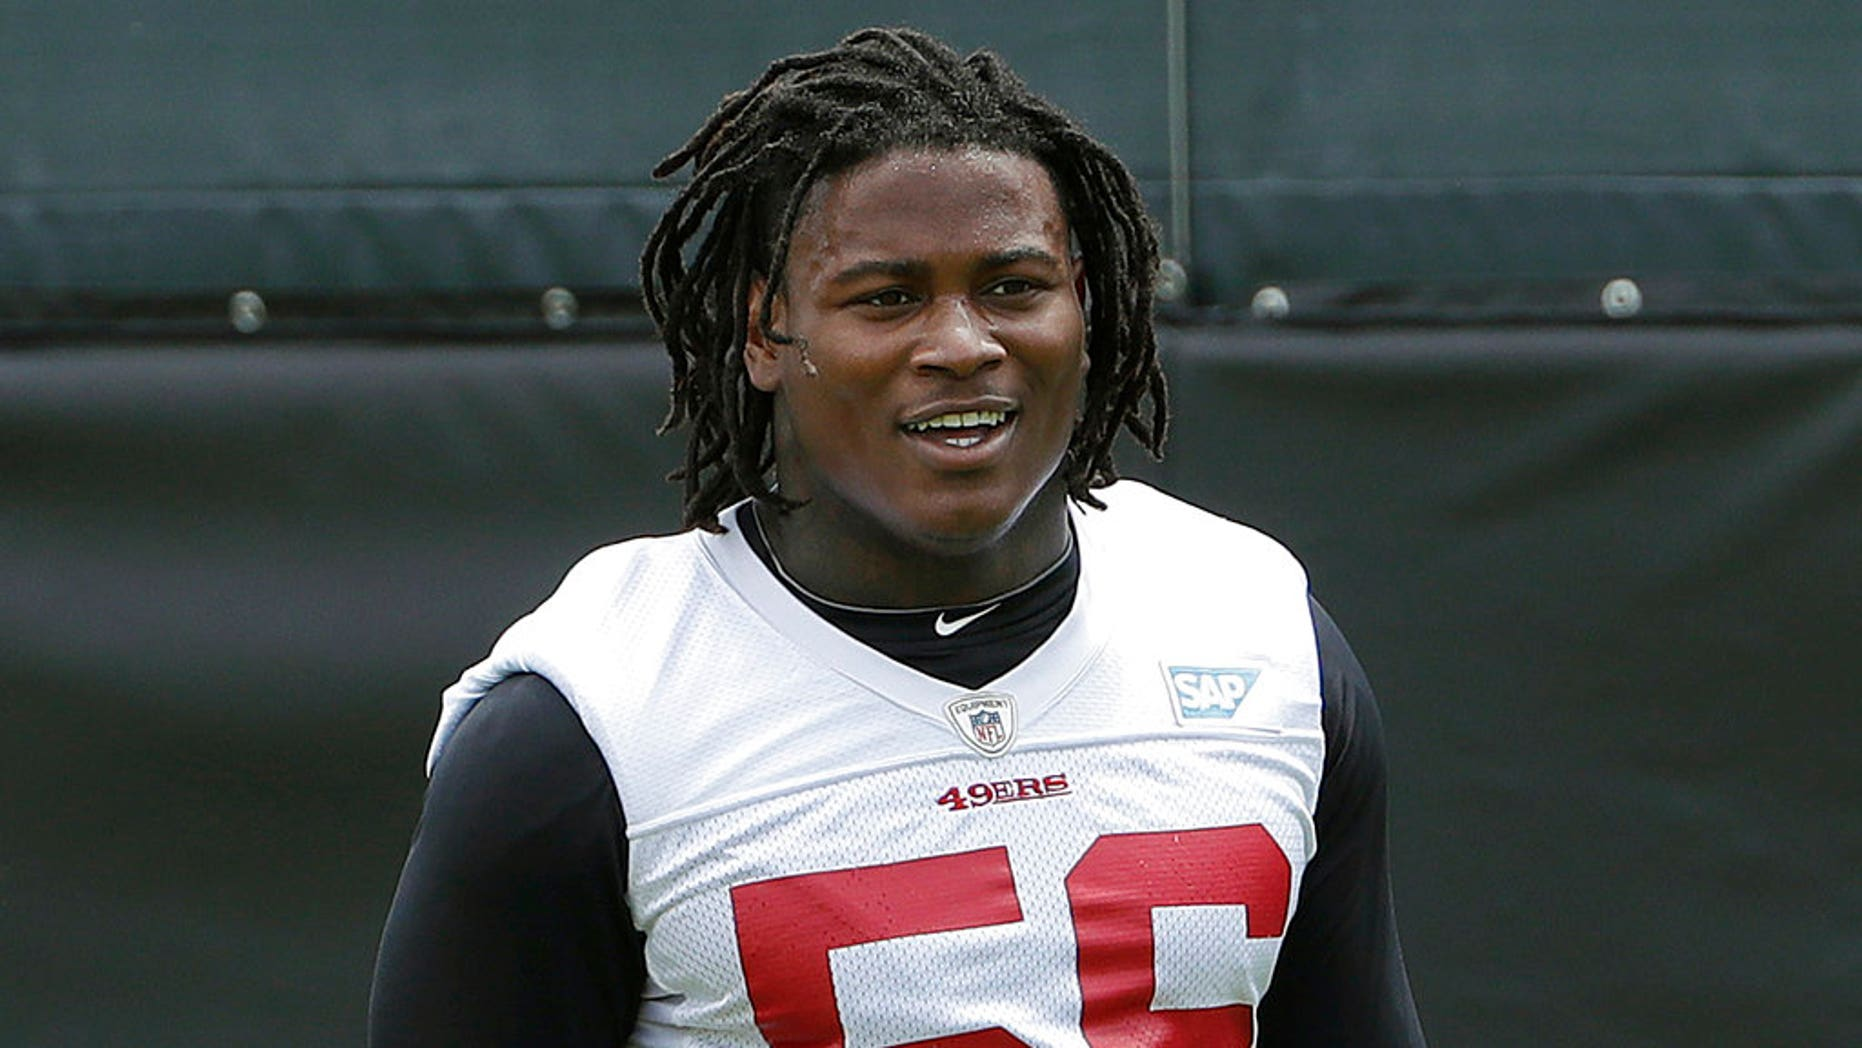 Redskins release statement explaining Reuben Foster signing